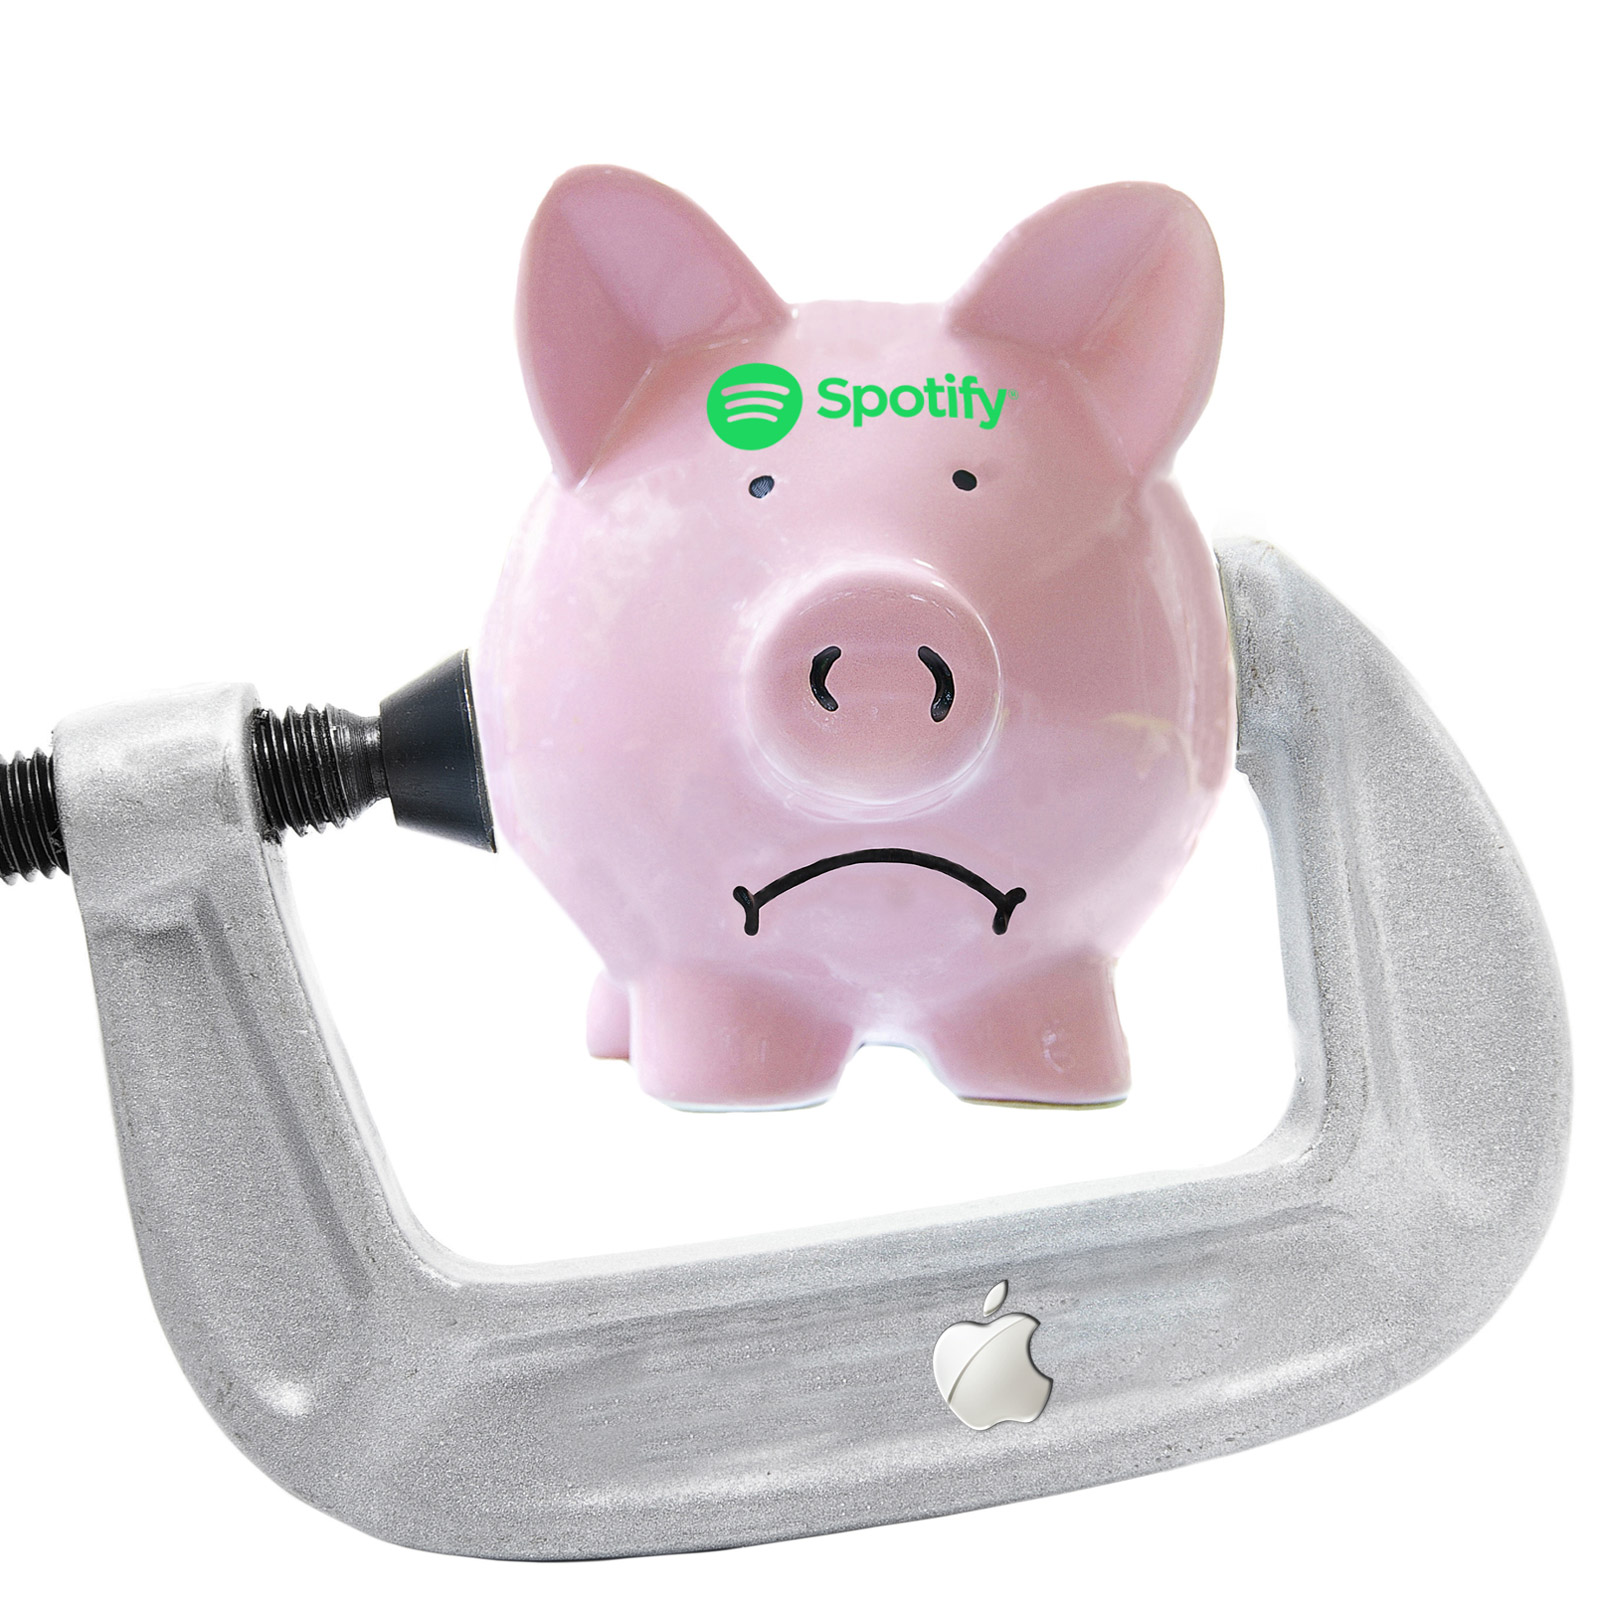 Spotify in the Apple Vise